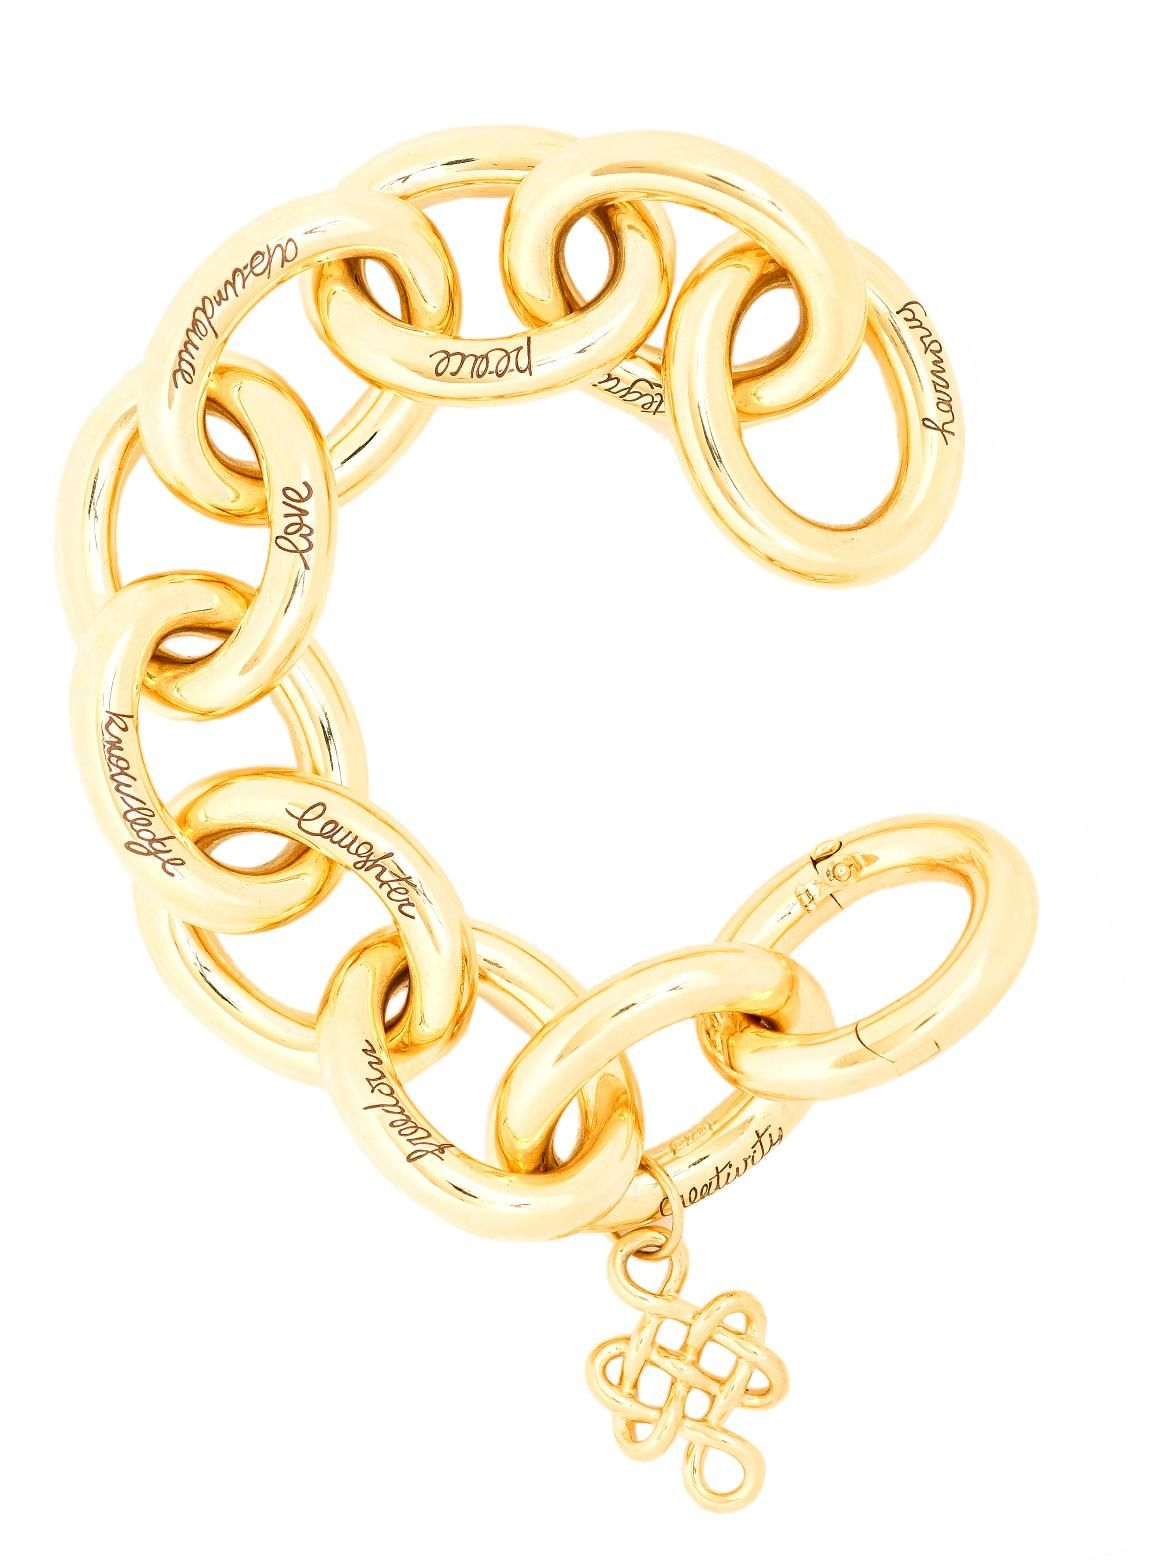 H.Stern 18k Yellow Gold Diane von Furstenberg Sutra Link Bracelet with Large Oval Links at London Jewelers!